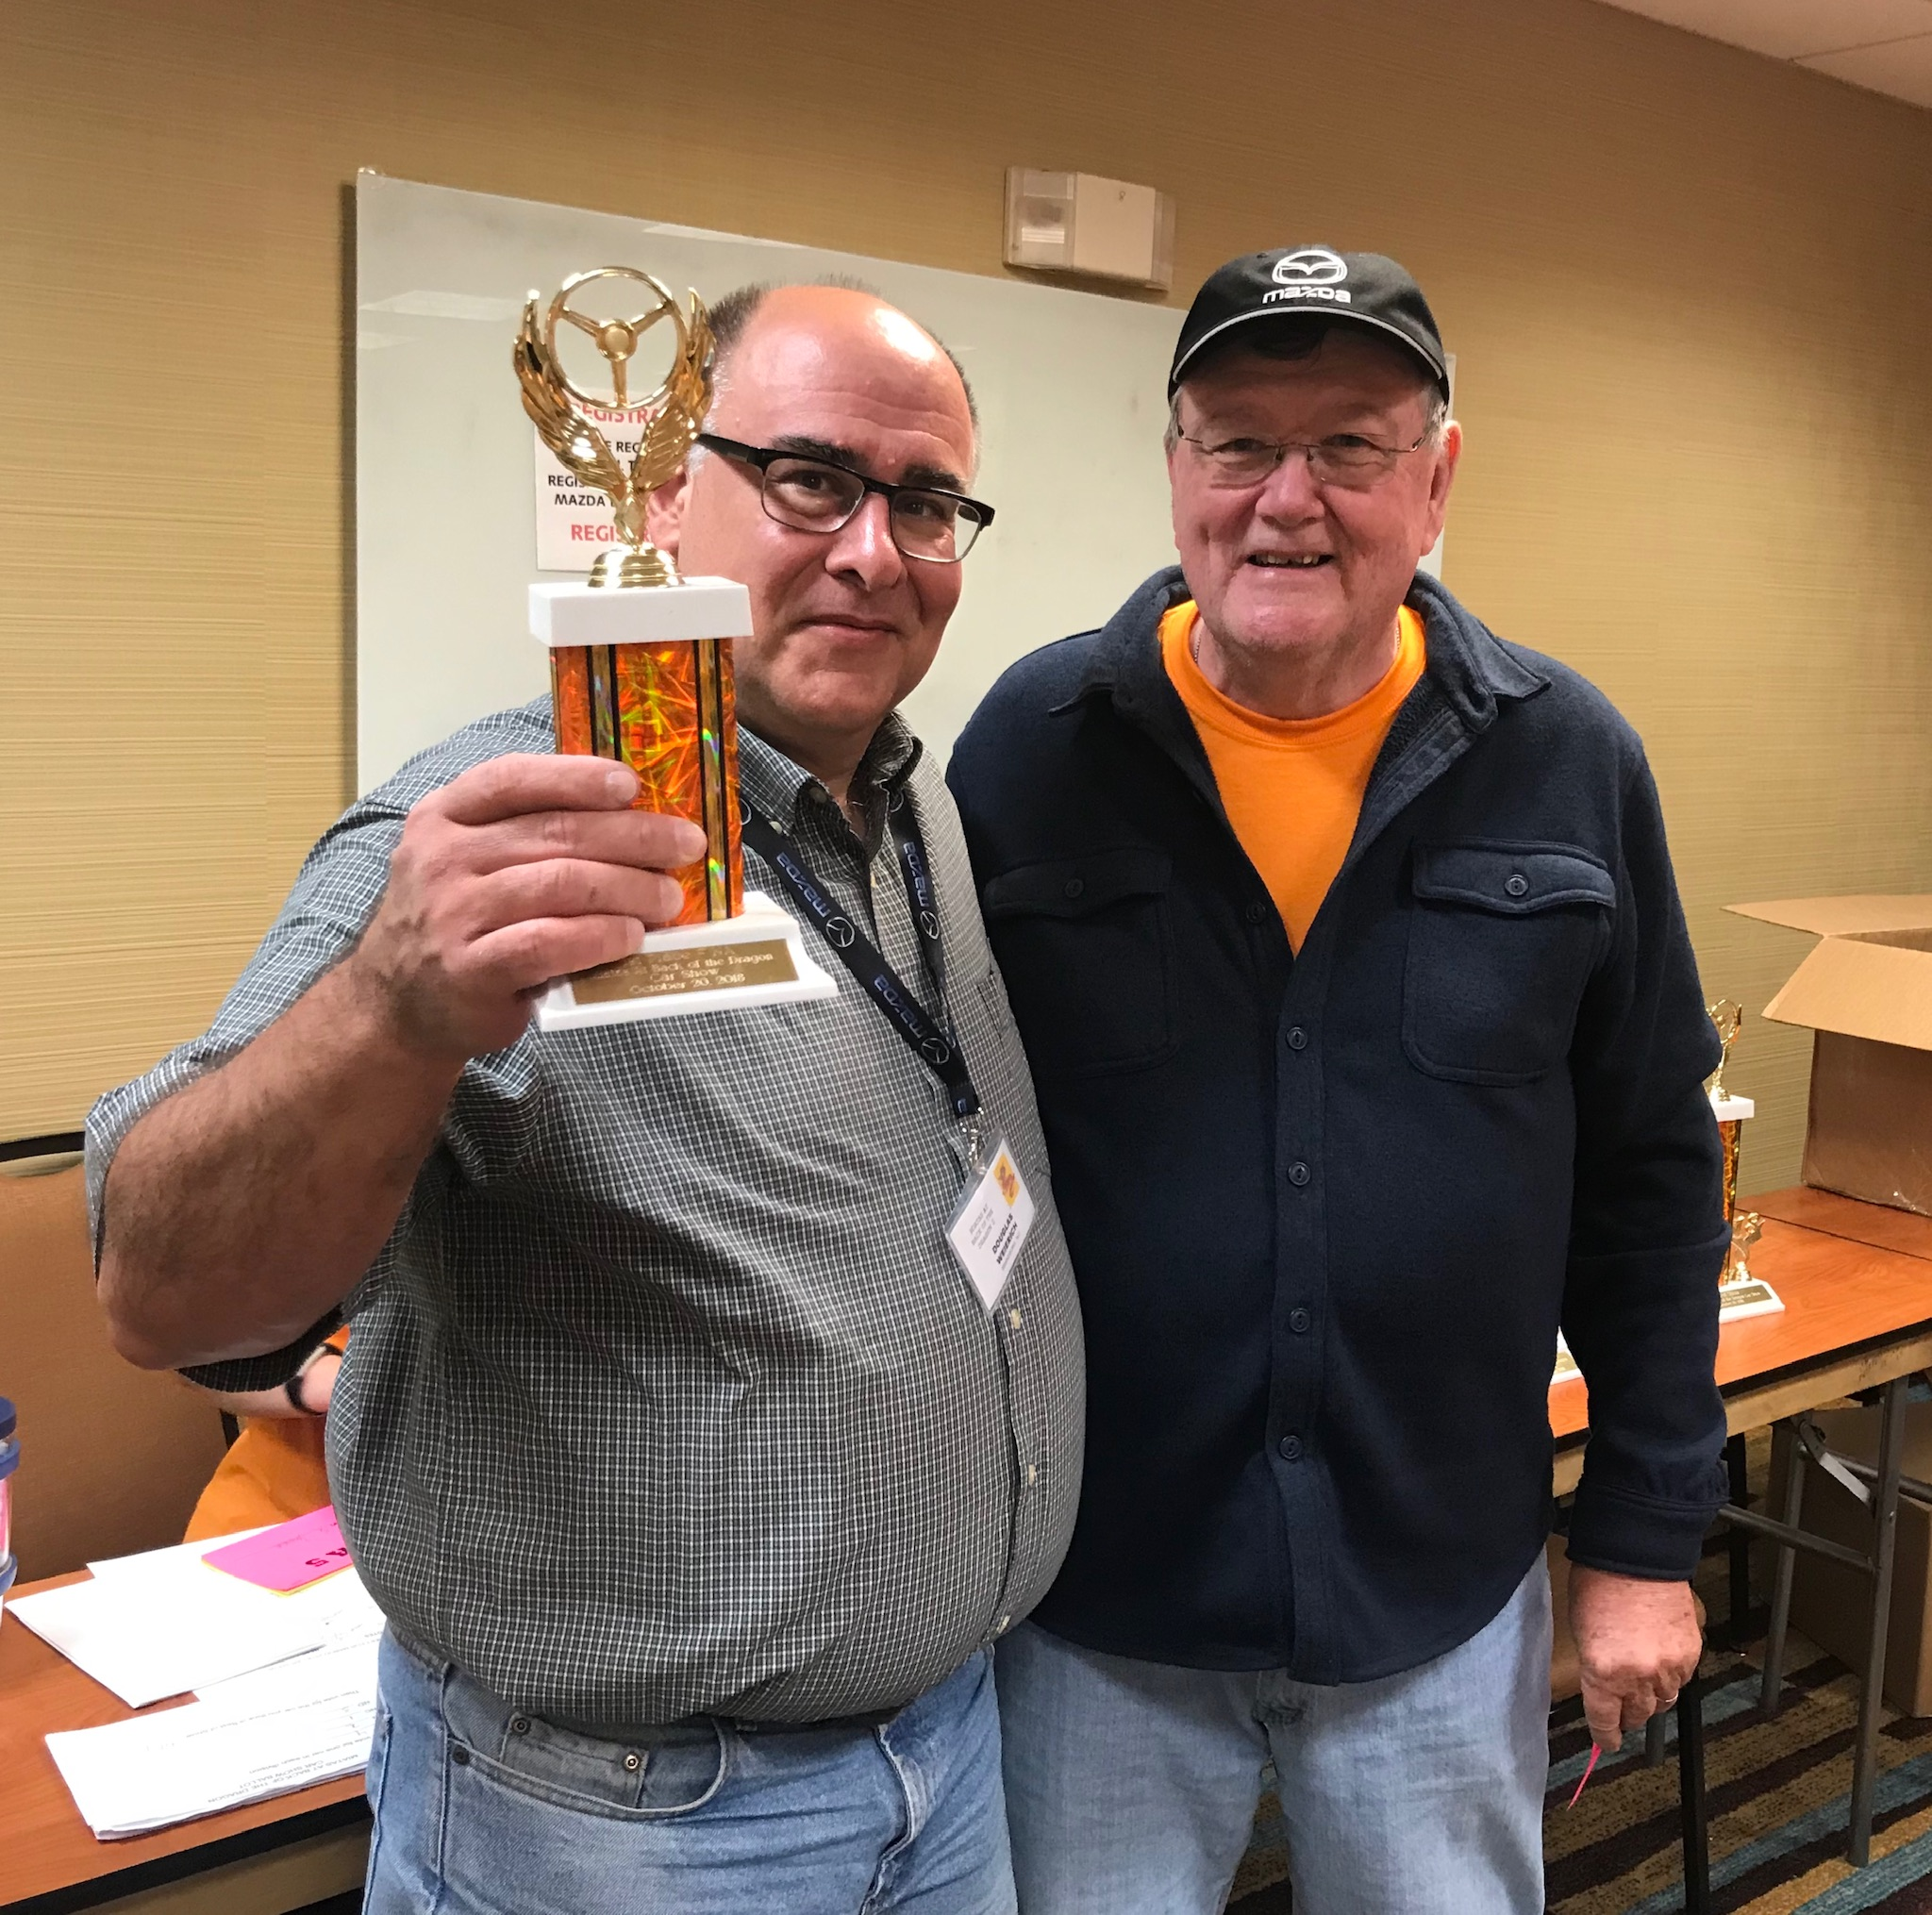 Jim Pickett presented the 1st Place - NA division trophy to Doug Weierich.